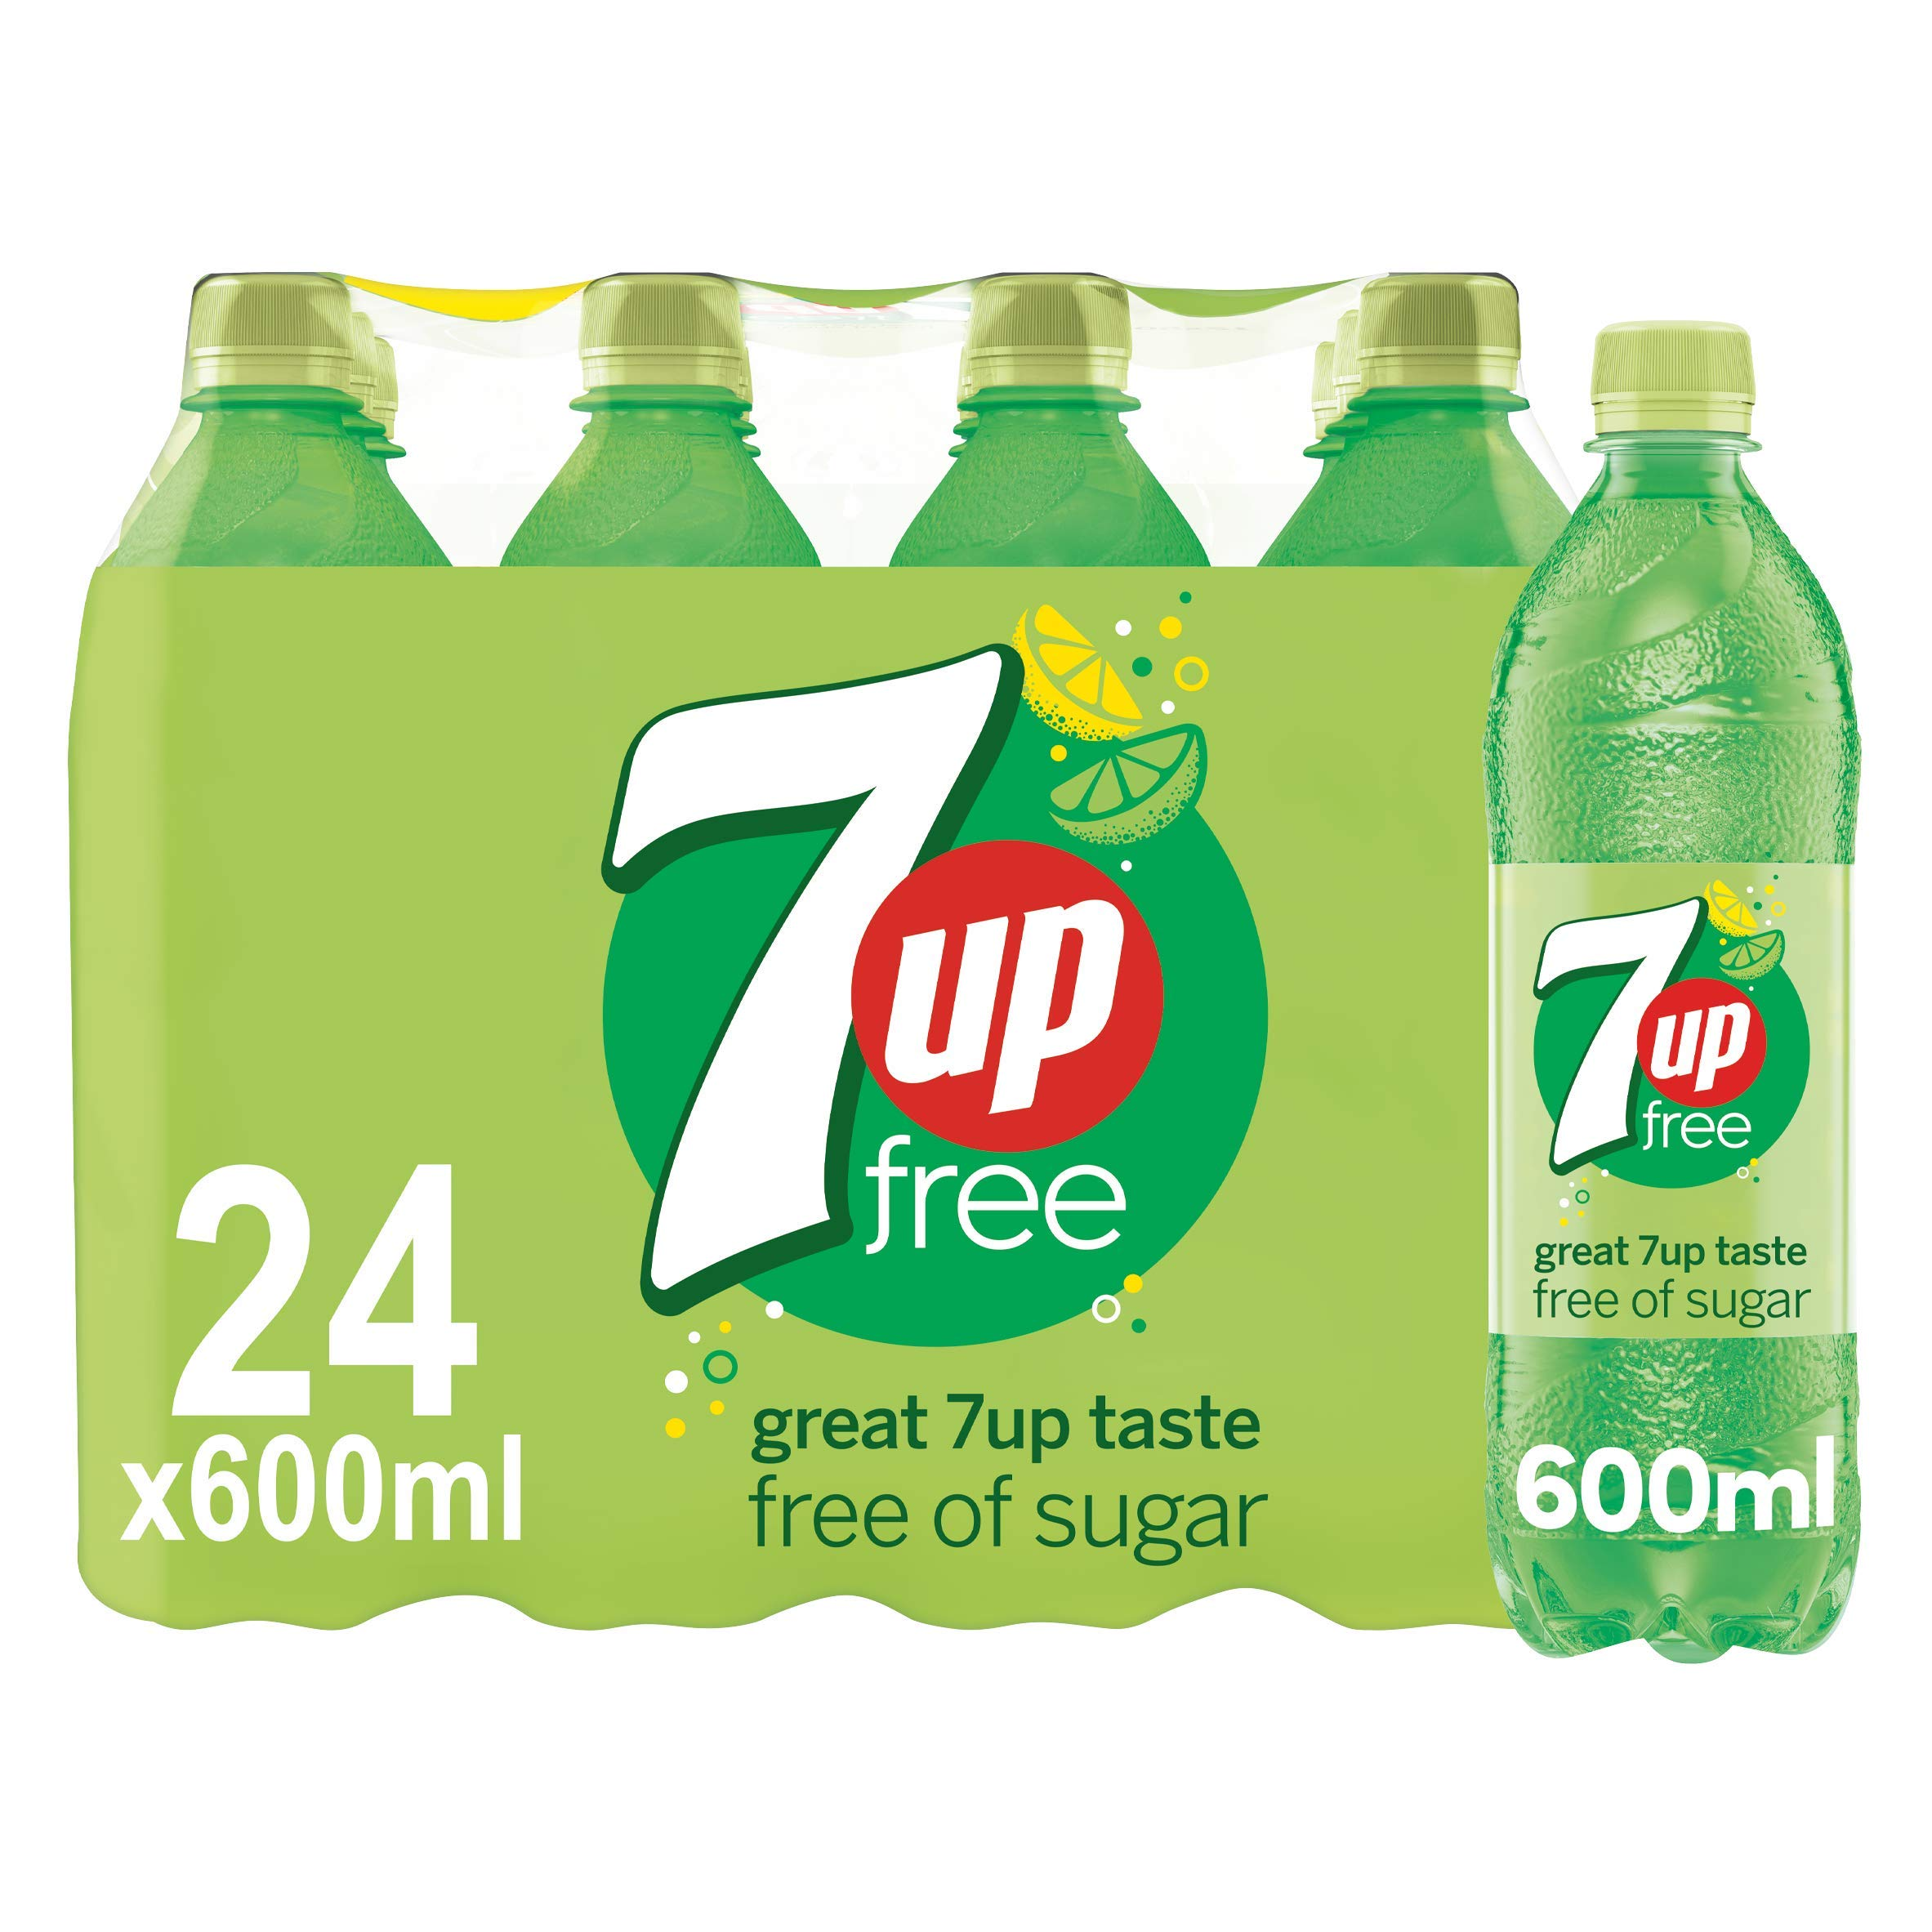 7UP Free - Lemon & Lime Flavoured Fizzy Drink - Sugar-Free - 24 x 600 ml bottles